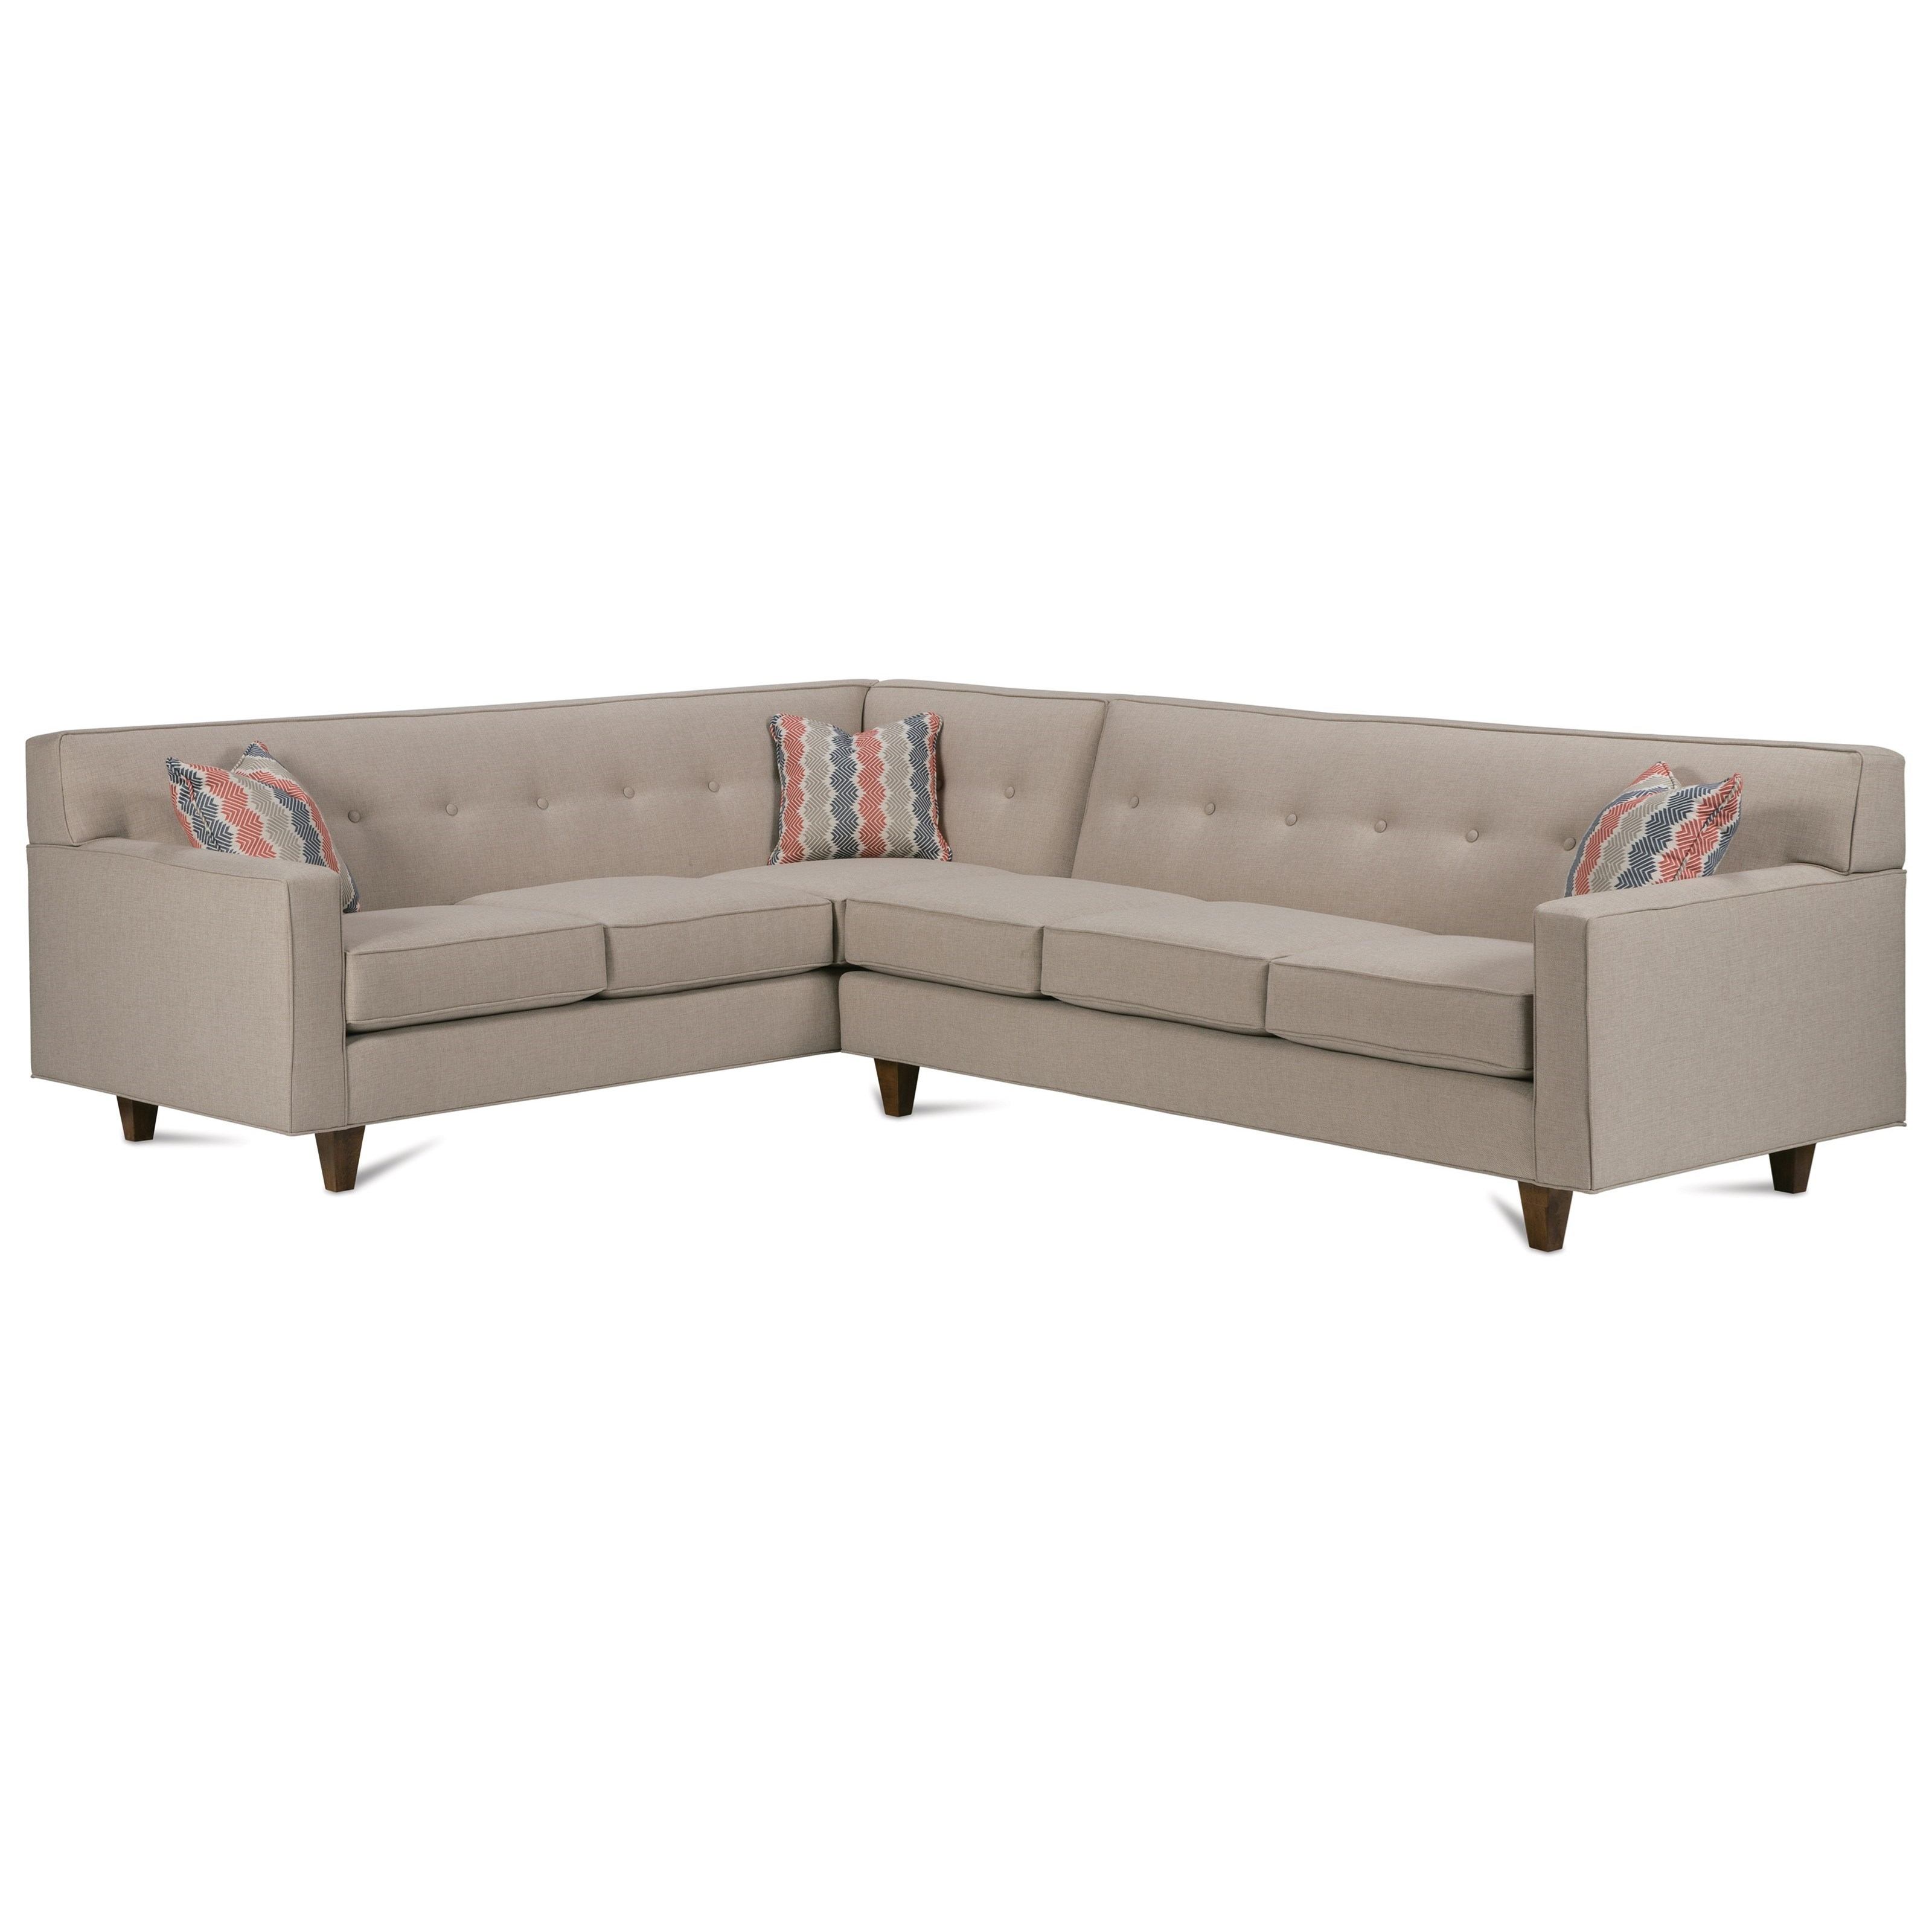 Dorset Corner Sectional with Tufted Back by Rowe at Thornton Furniture